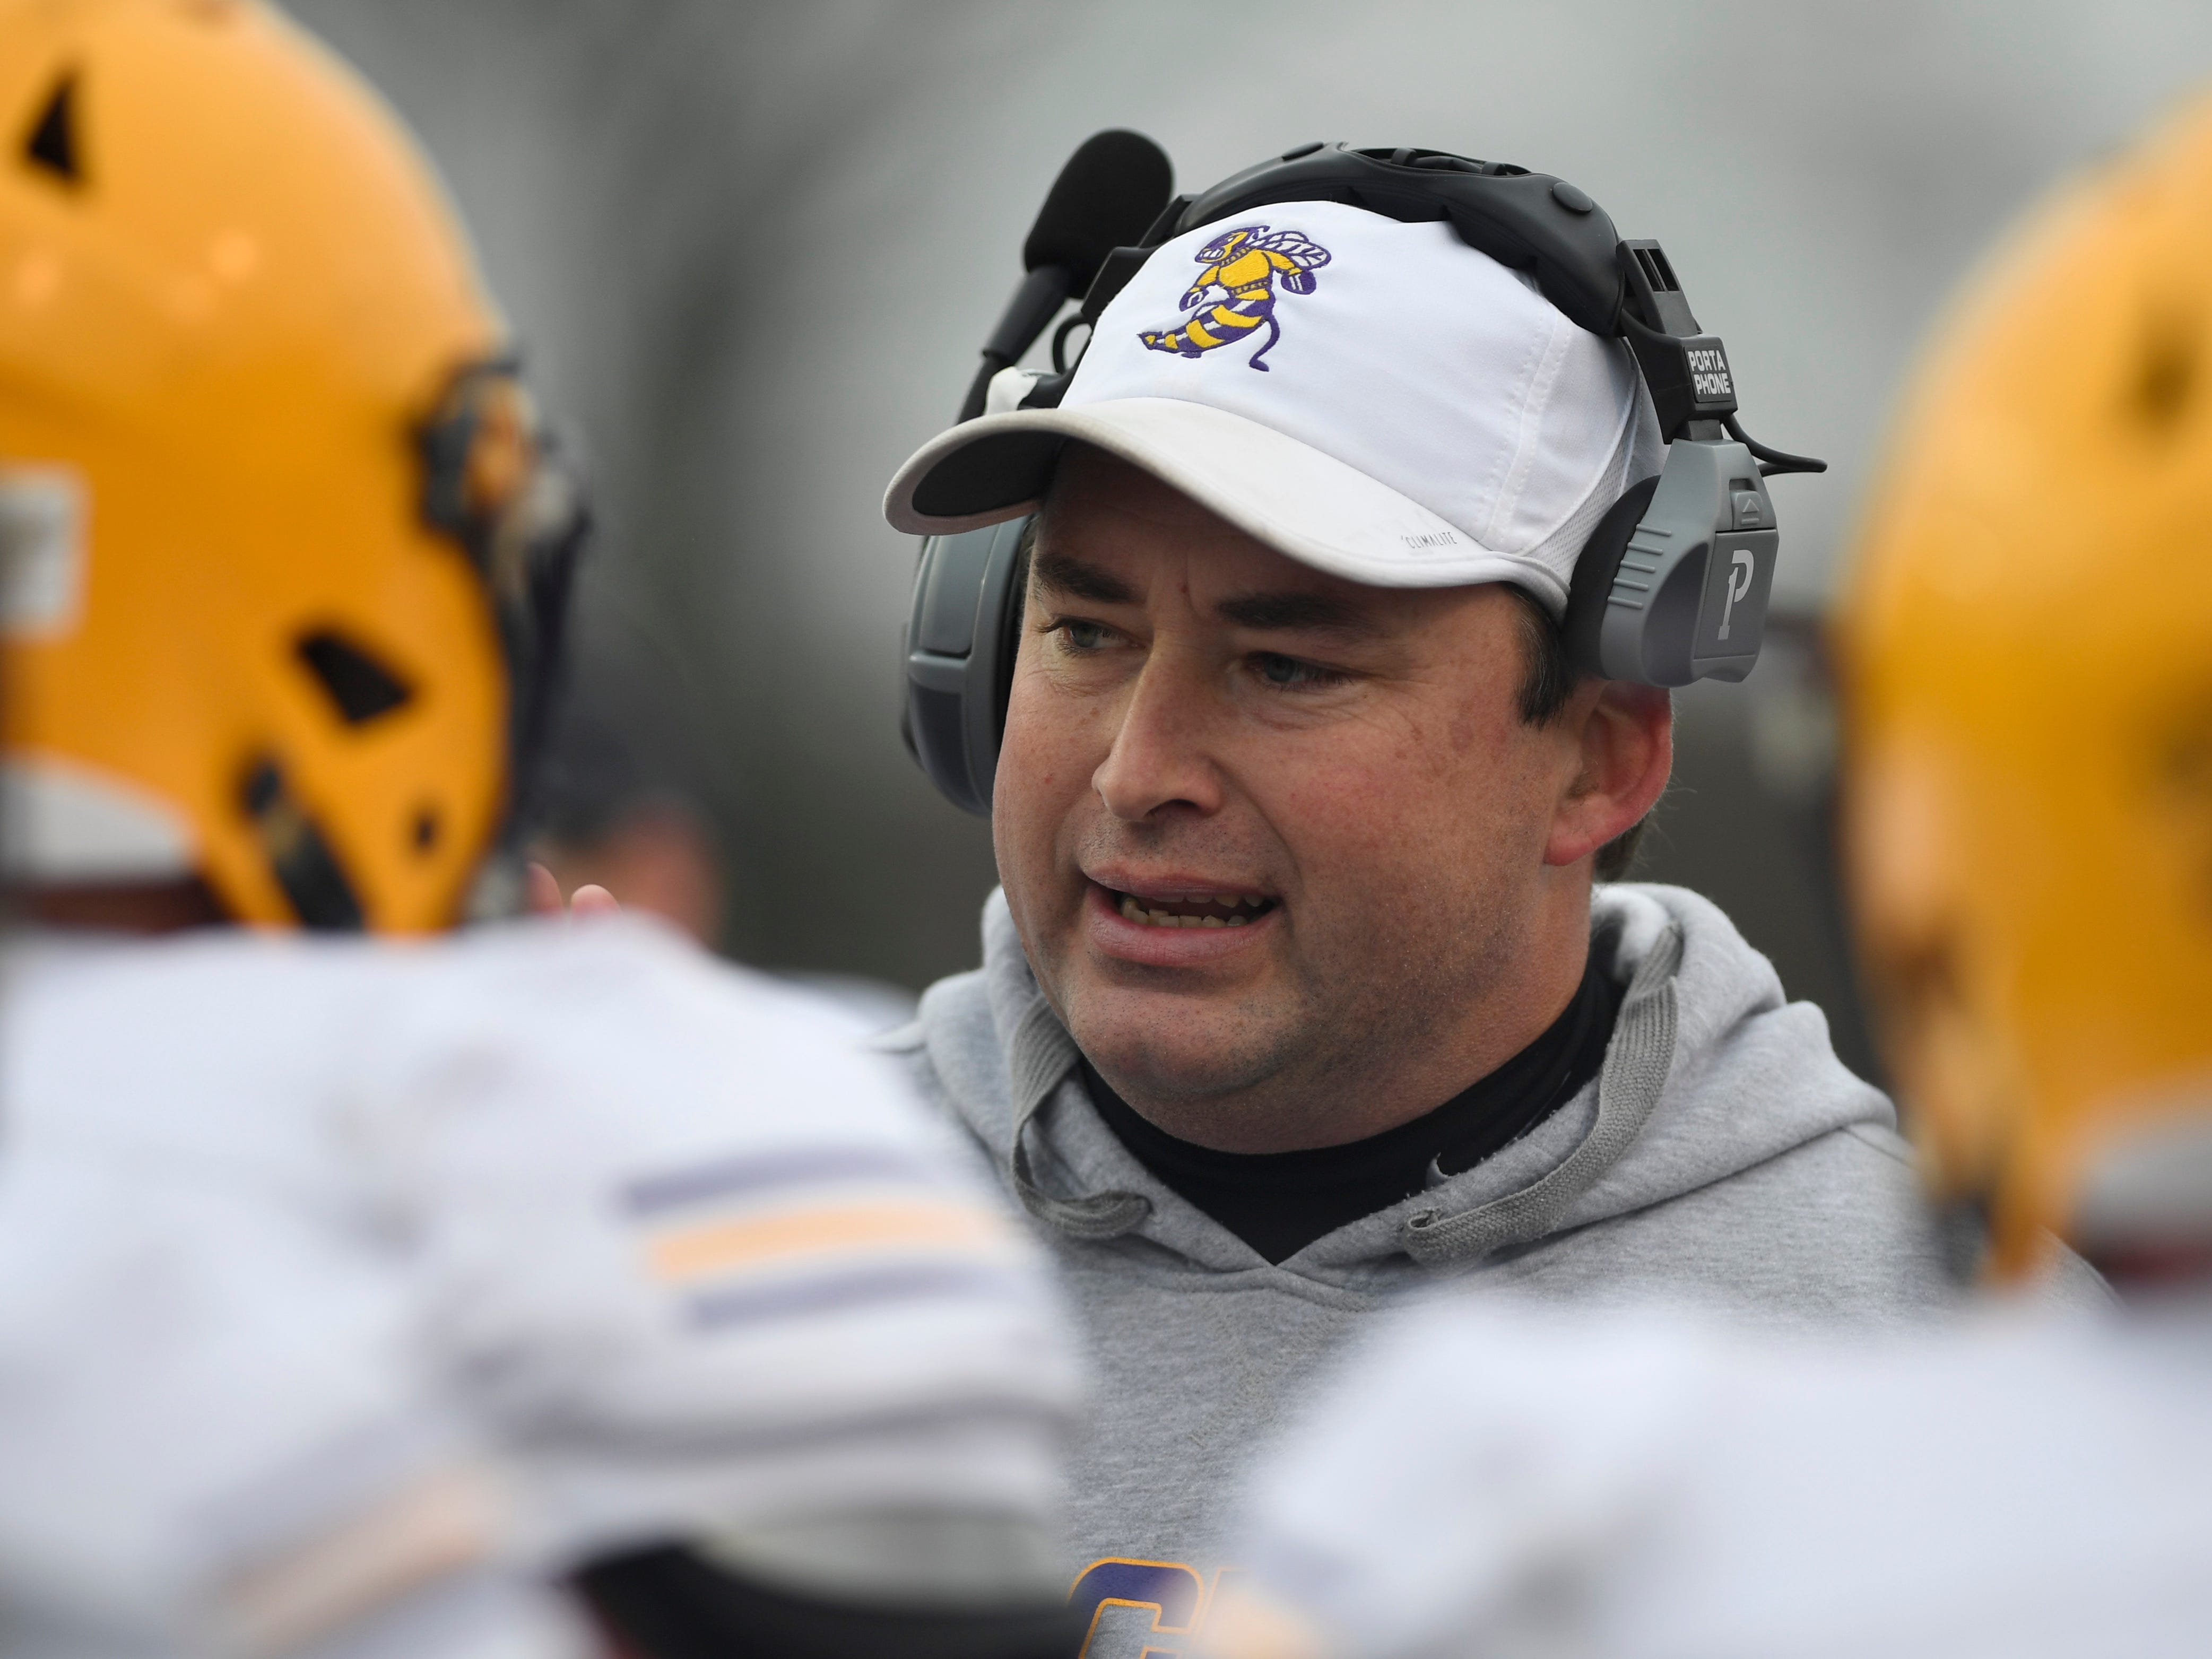 Trousdale head coach Brad Waggoner instructs his team during the Class 2A BlueCross Bowl state championship at Tennessee Tech's Tucker Stadium in Cookeville, Tenn., on Thursday, Nov. 29, 2018.